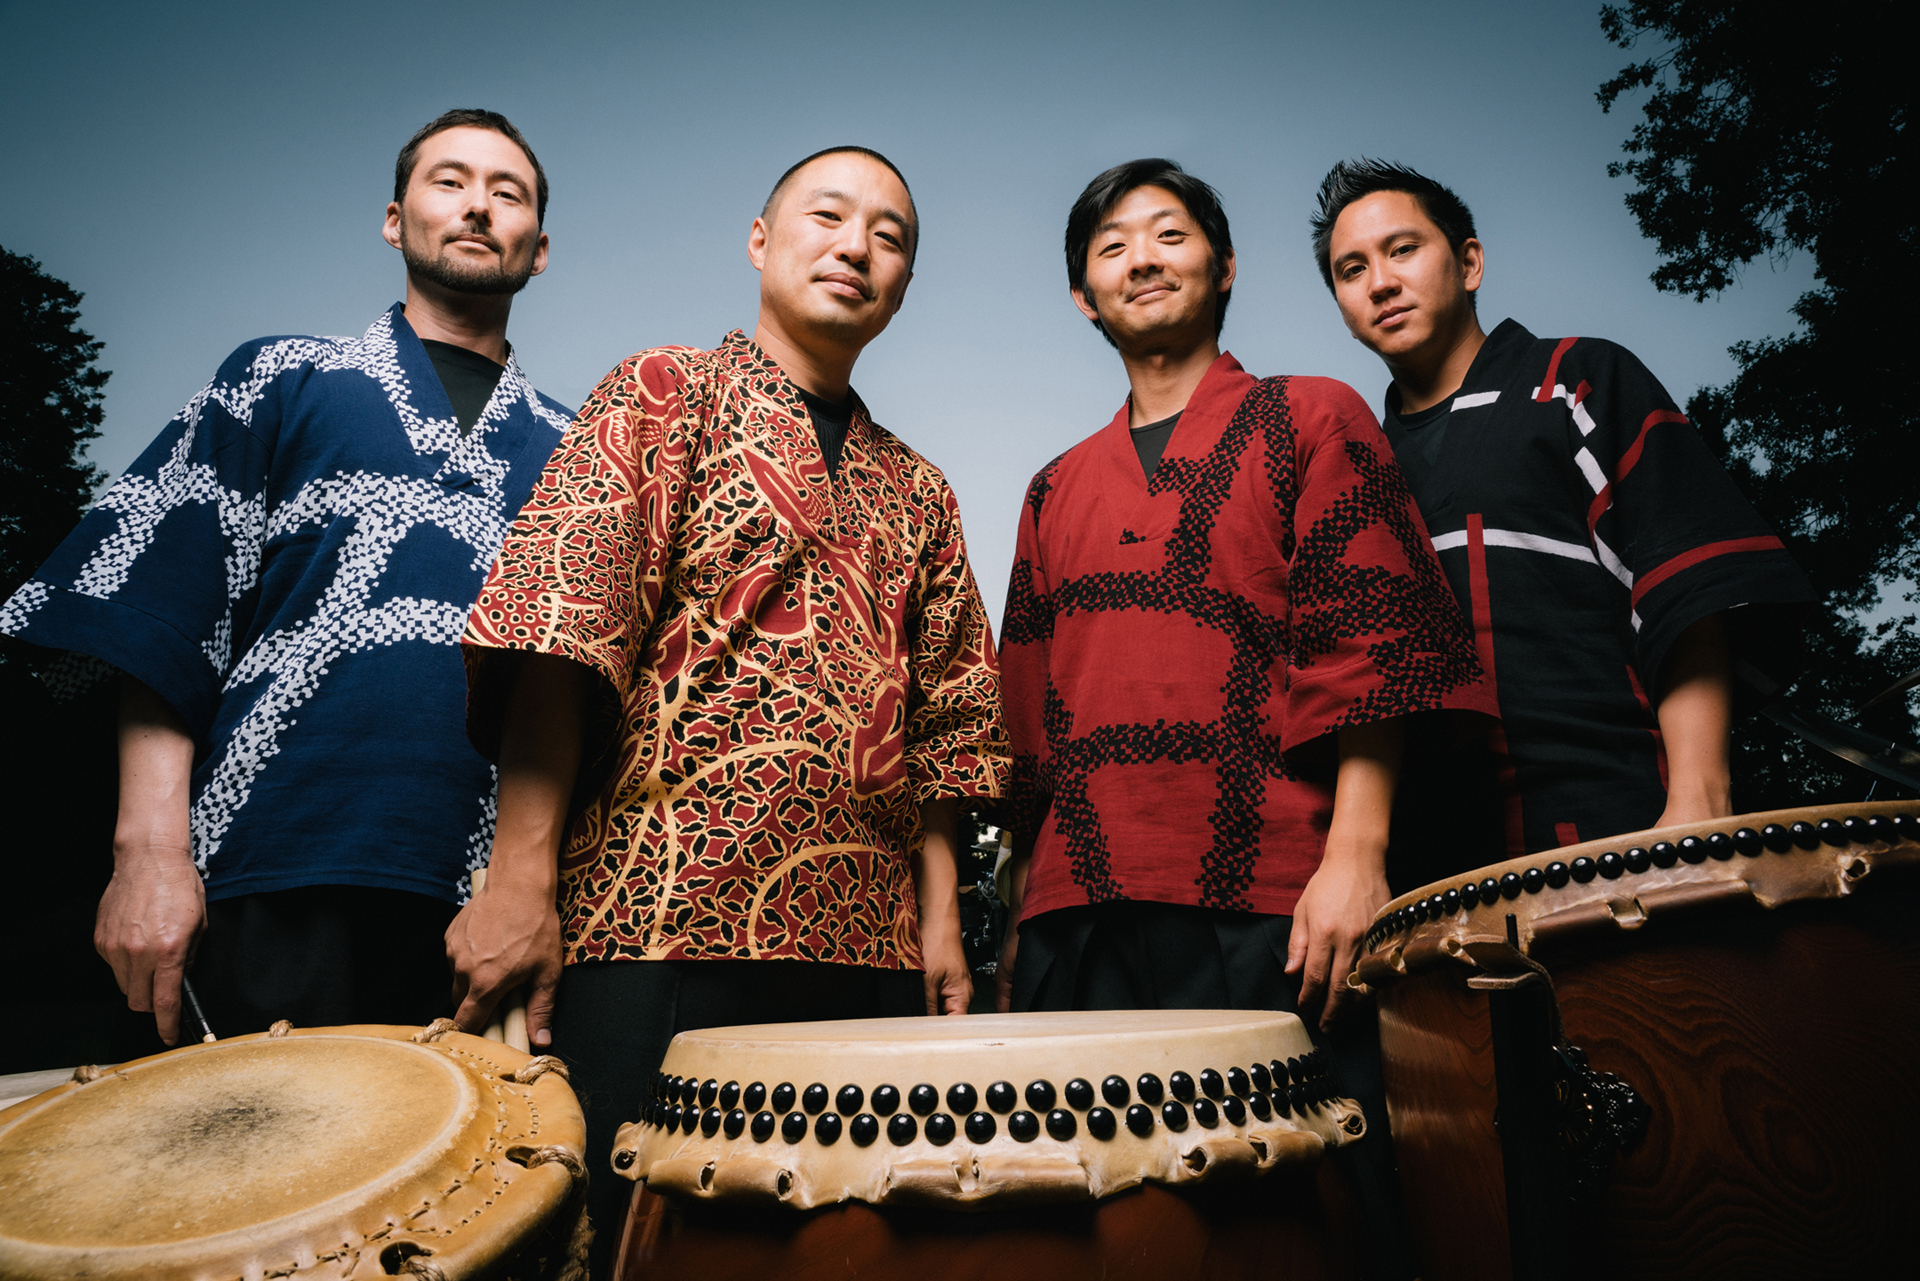 Members of On Ensemble posing with taiko drums